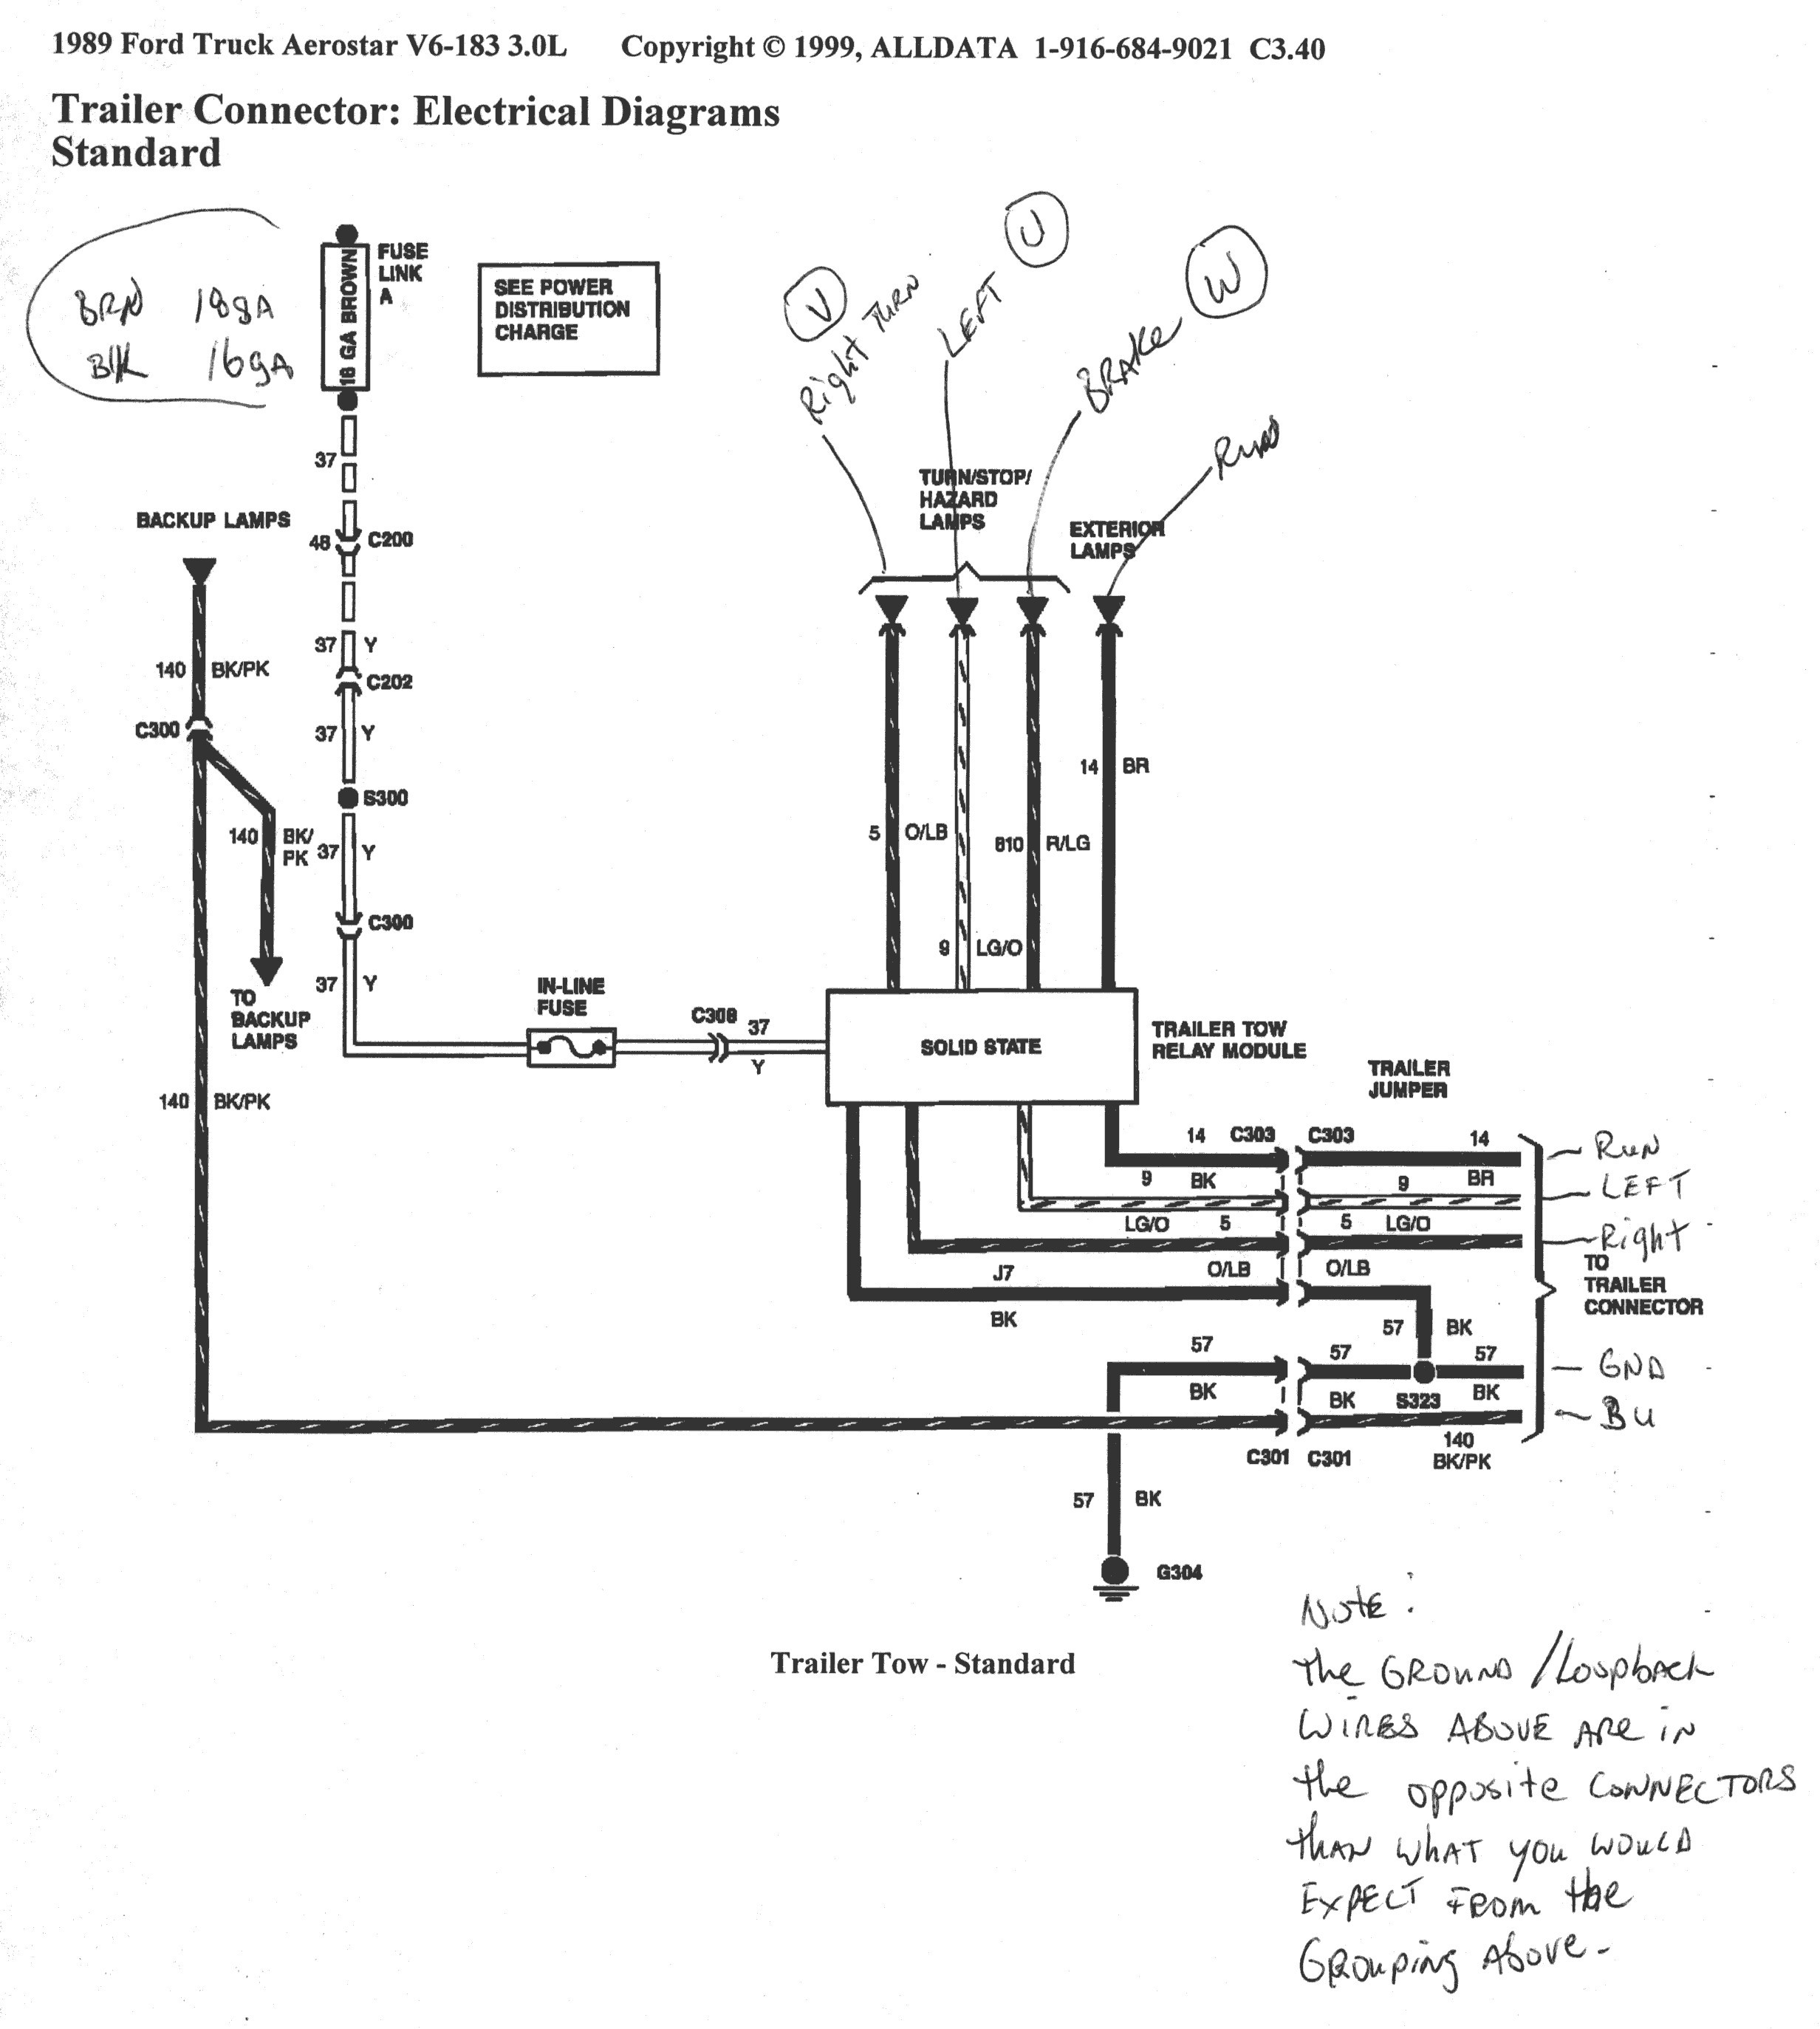 1997 Ford F150 Trailer Wiring Diagram from wholefoodsonabudget.com